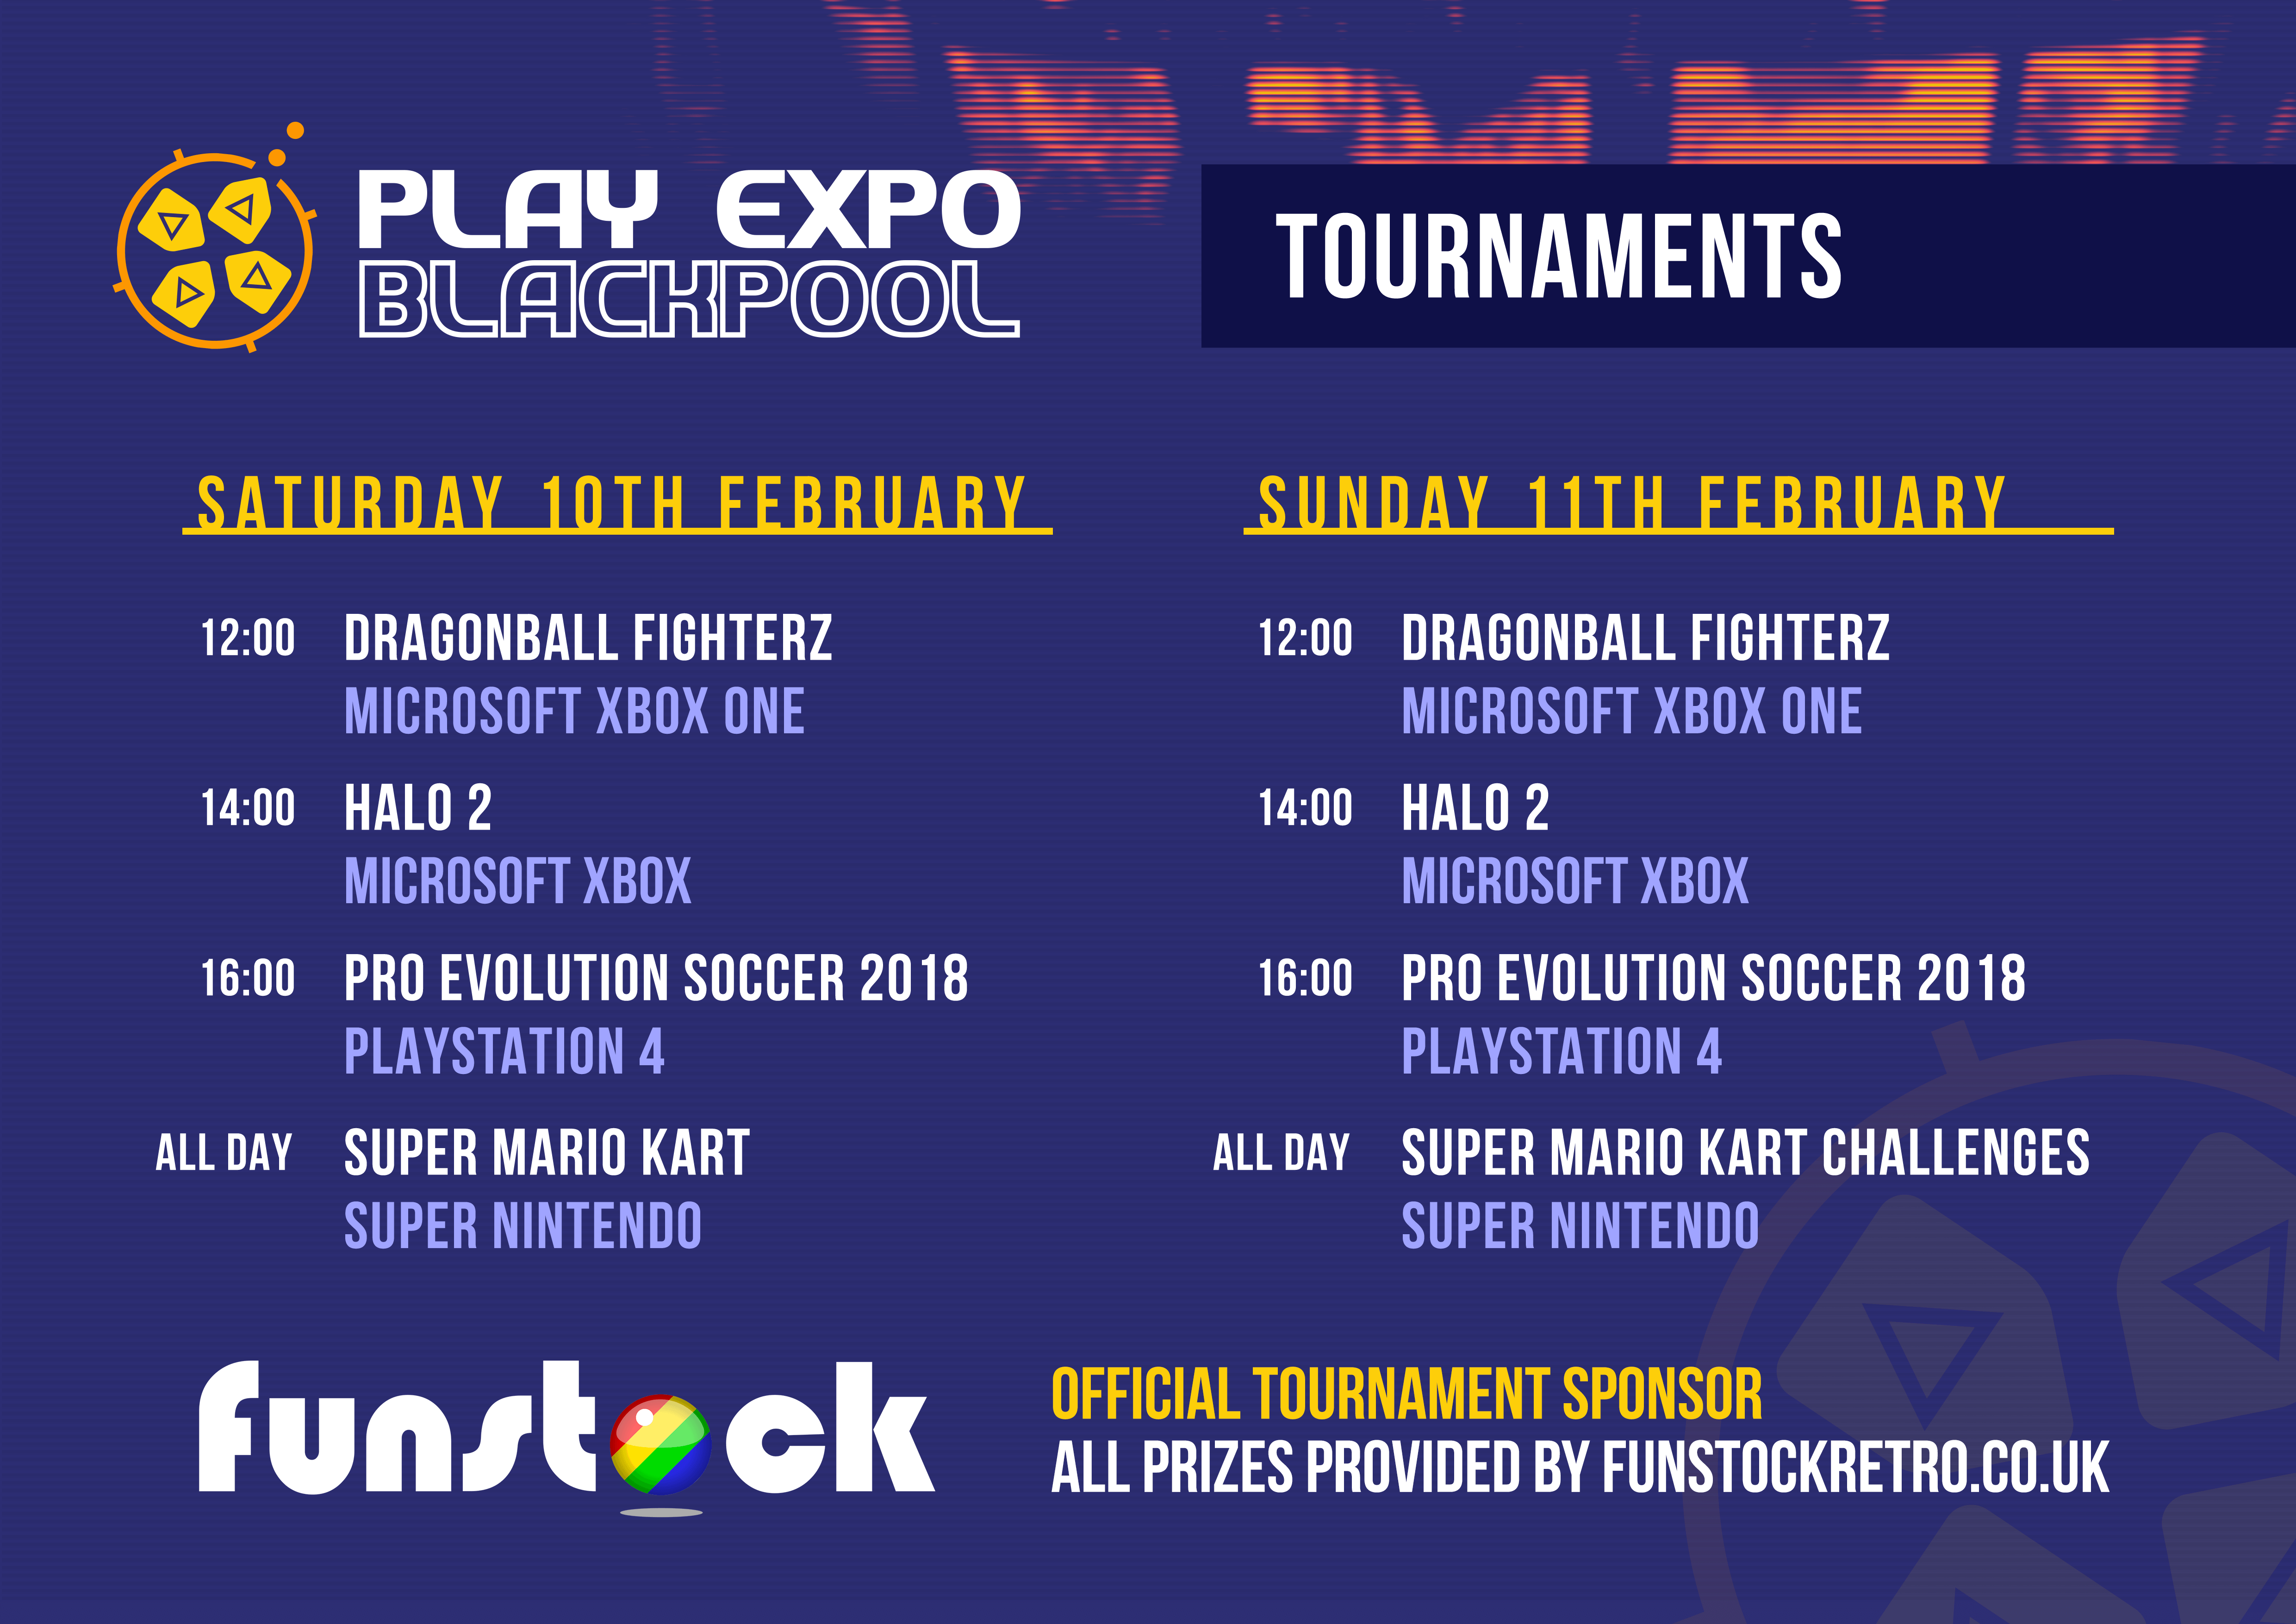 RE PlayExpo Blackpool18 Schedule Talks